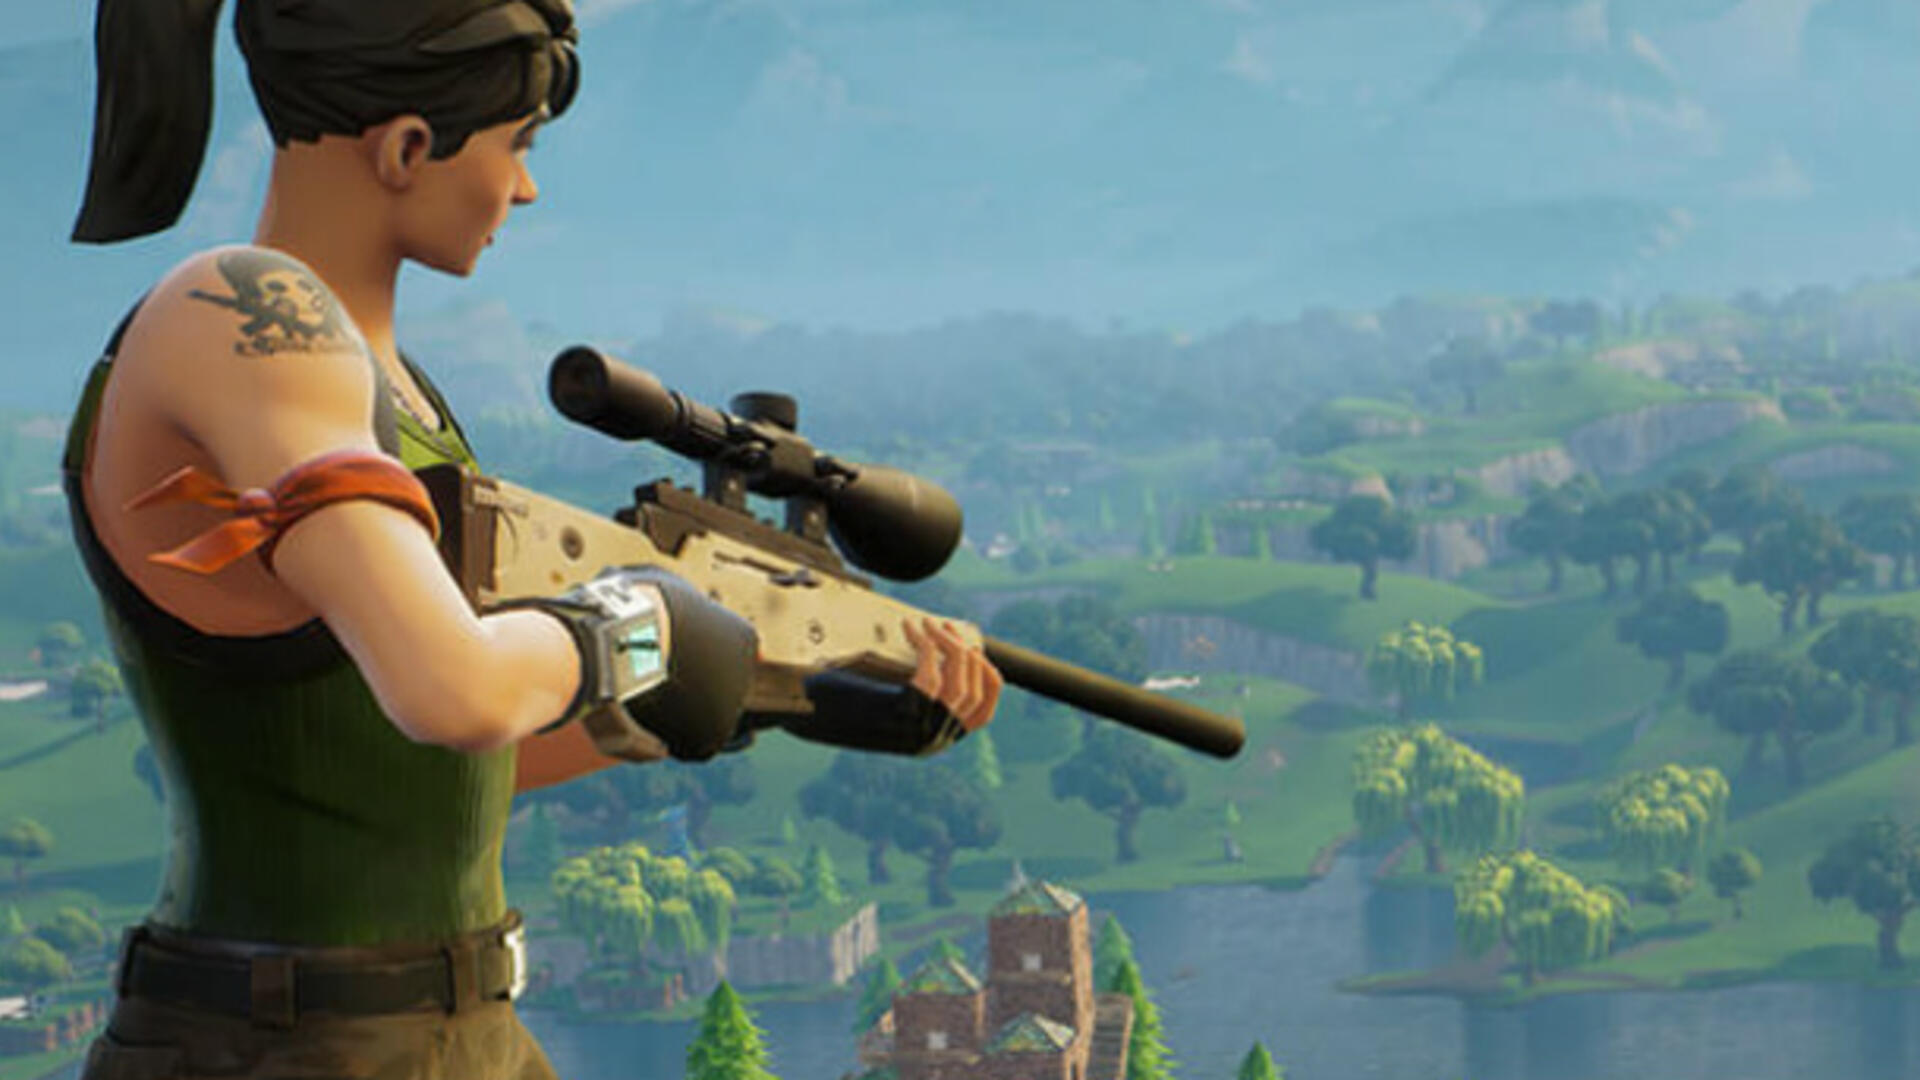 Fortnite Battle Royale Beginner's Guide - Essential Tips, How to Build Quickly